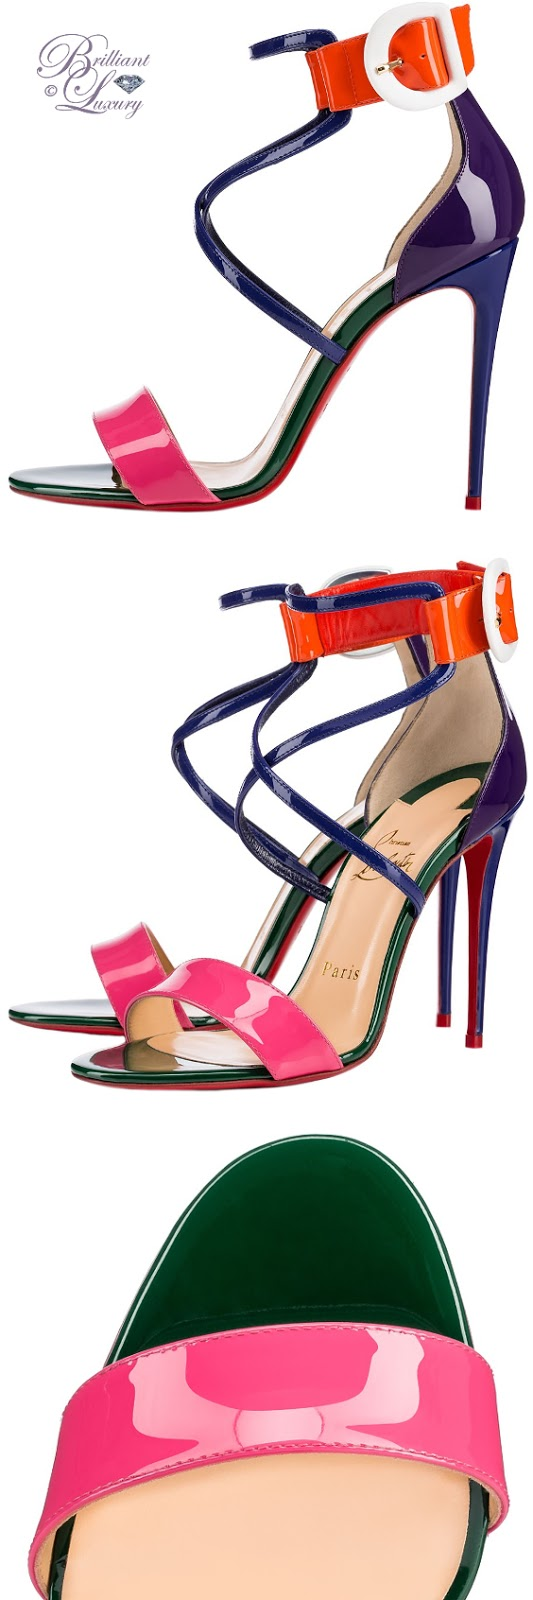 Brilliant Luxury ♦ Christian Louboutin Choca Sandal